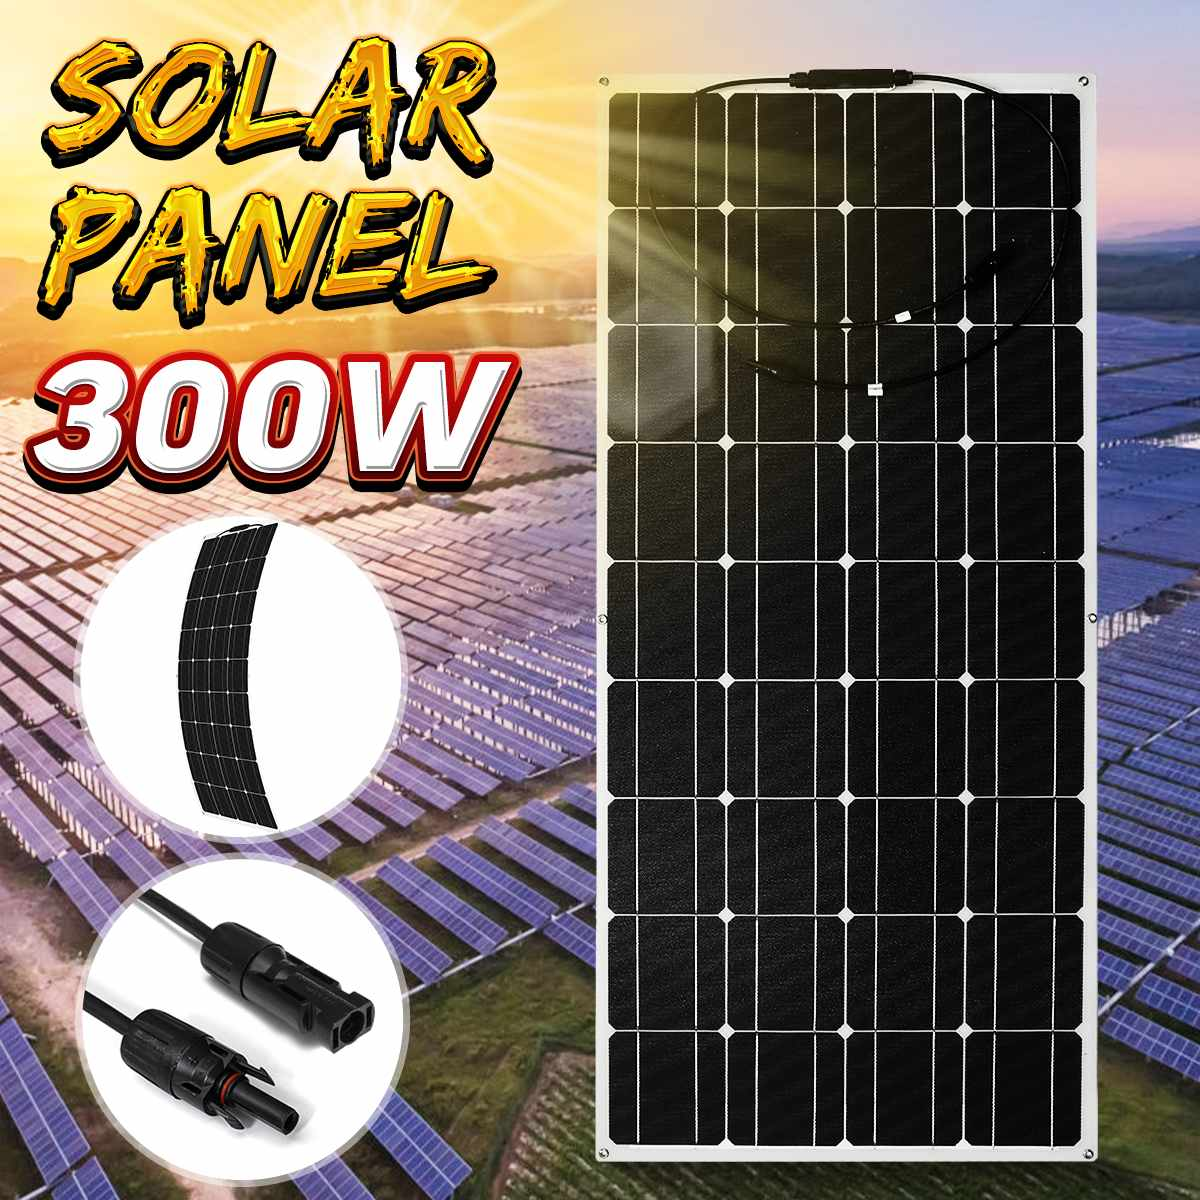 18V Solar Panel 300W Semi-flexible Monocrystalline Solar Cell DIY Module MC4 Cable Outdoor Connector Battery Charger Waterproof